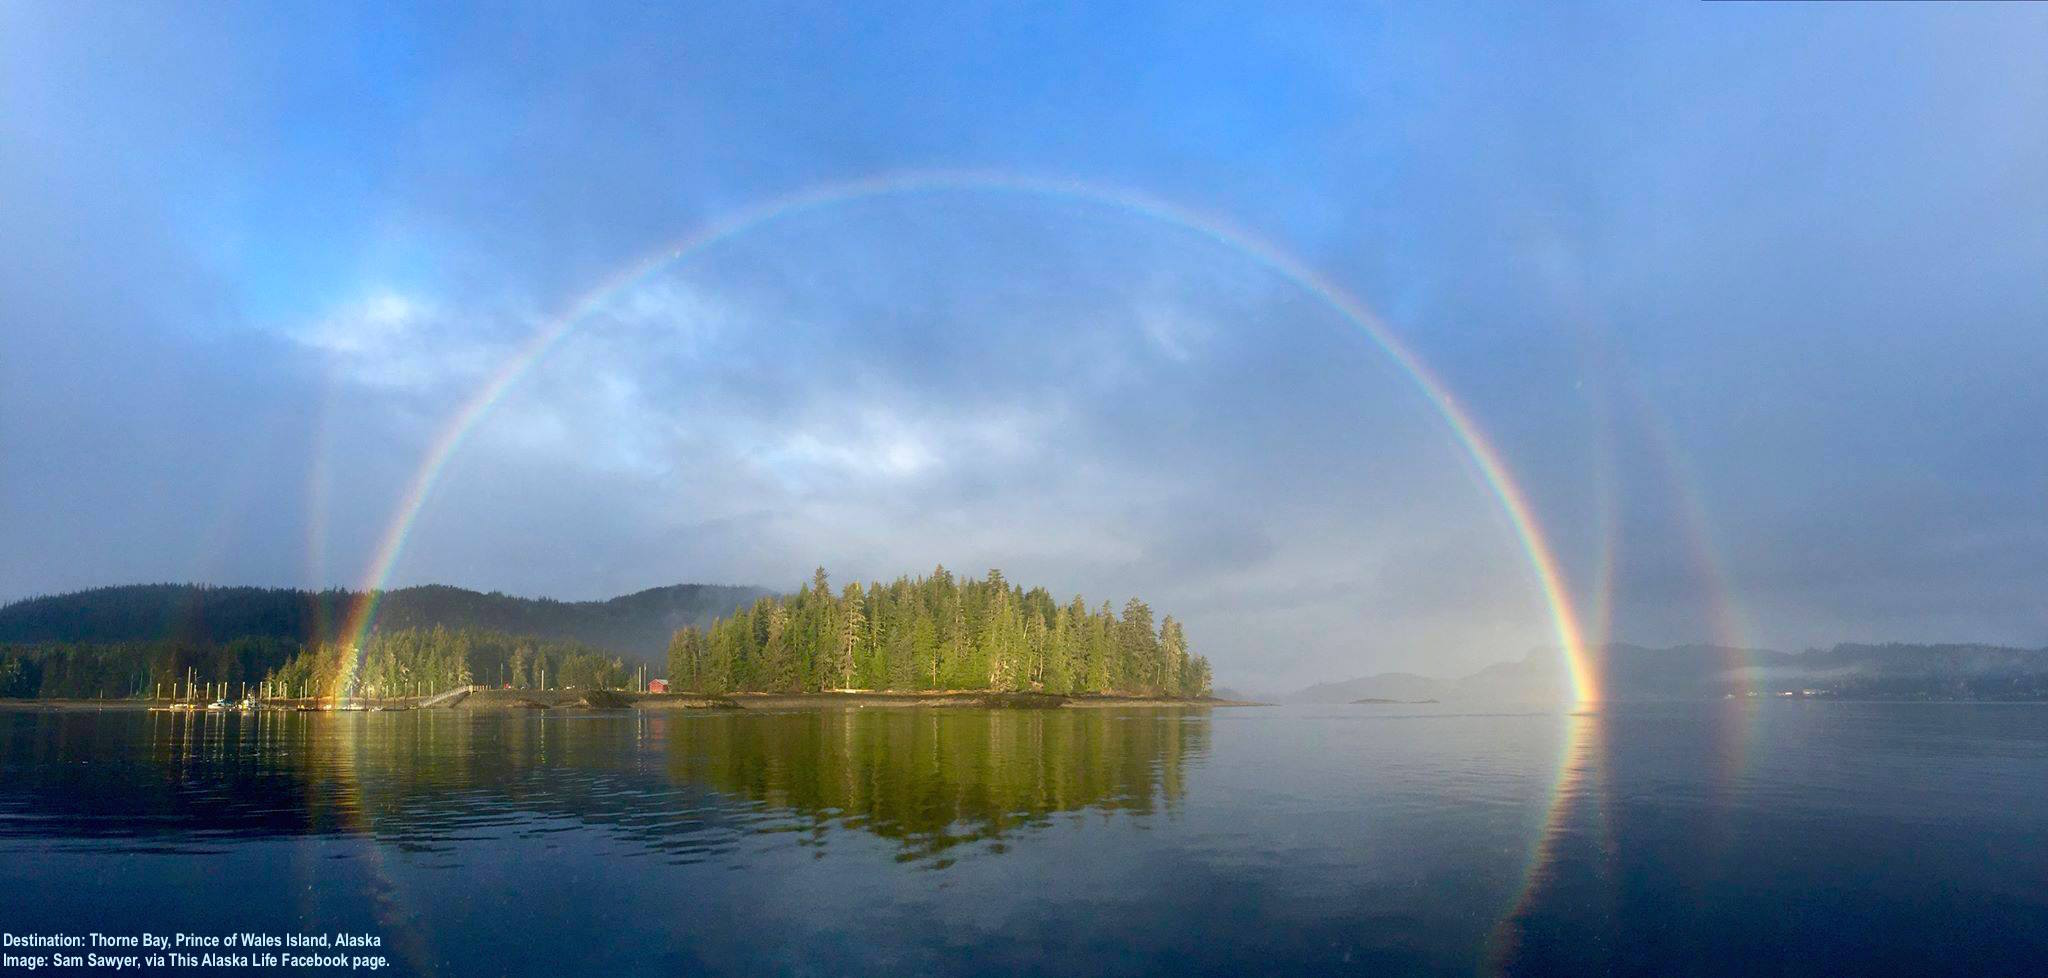 THE OLD GROWTH RAINFOREST OF TONGASS NATIONAL FOREST, BEARS, WOLVES, EAGLES, OTTERS, AND WHALES, GOOD FOOD, AND STRANGER WHO BECOME FAMILY - TOP IT OFF BY A RAINBOW AND THIS MUST BE PARADISE: PRINCE OF WALES ISLAND, ALASKA. IMAGE: SAM SAWYER VIA THIS ALASKAN LIFE FACEBOOK PAGE